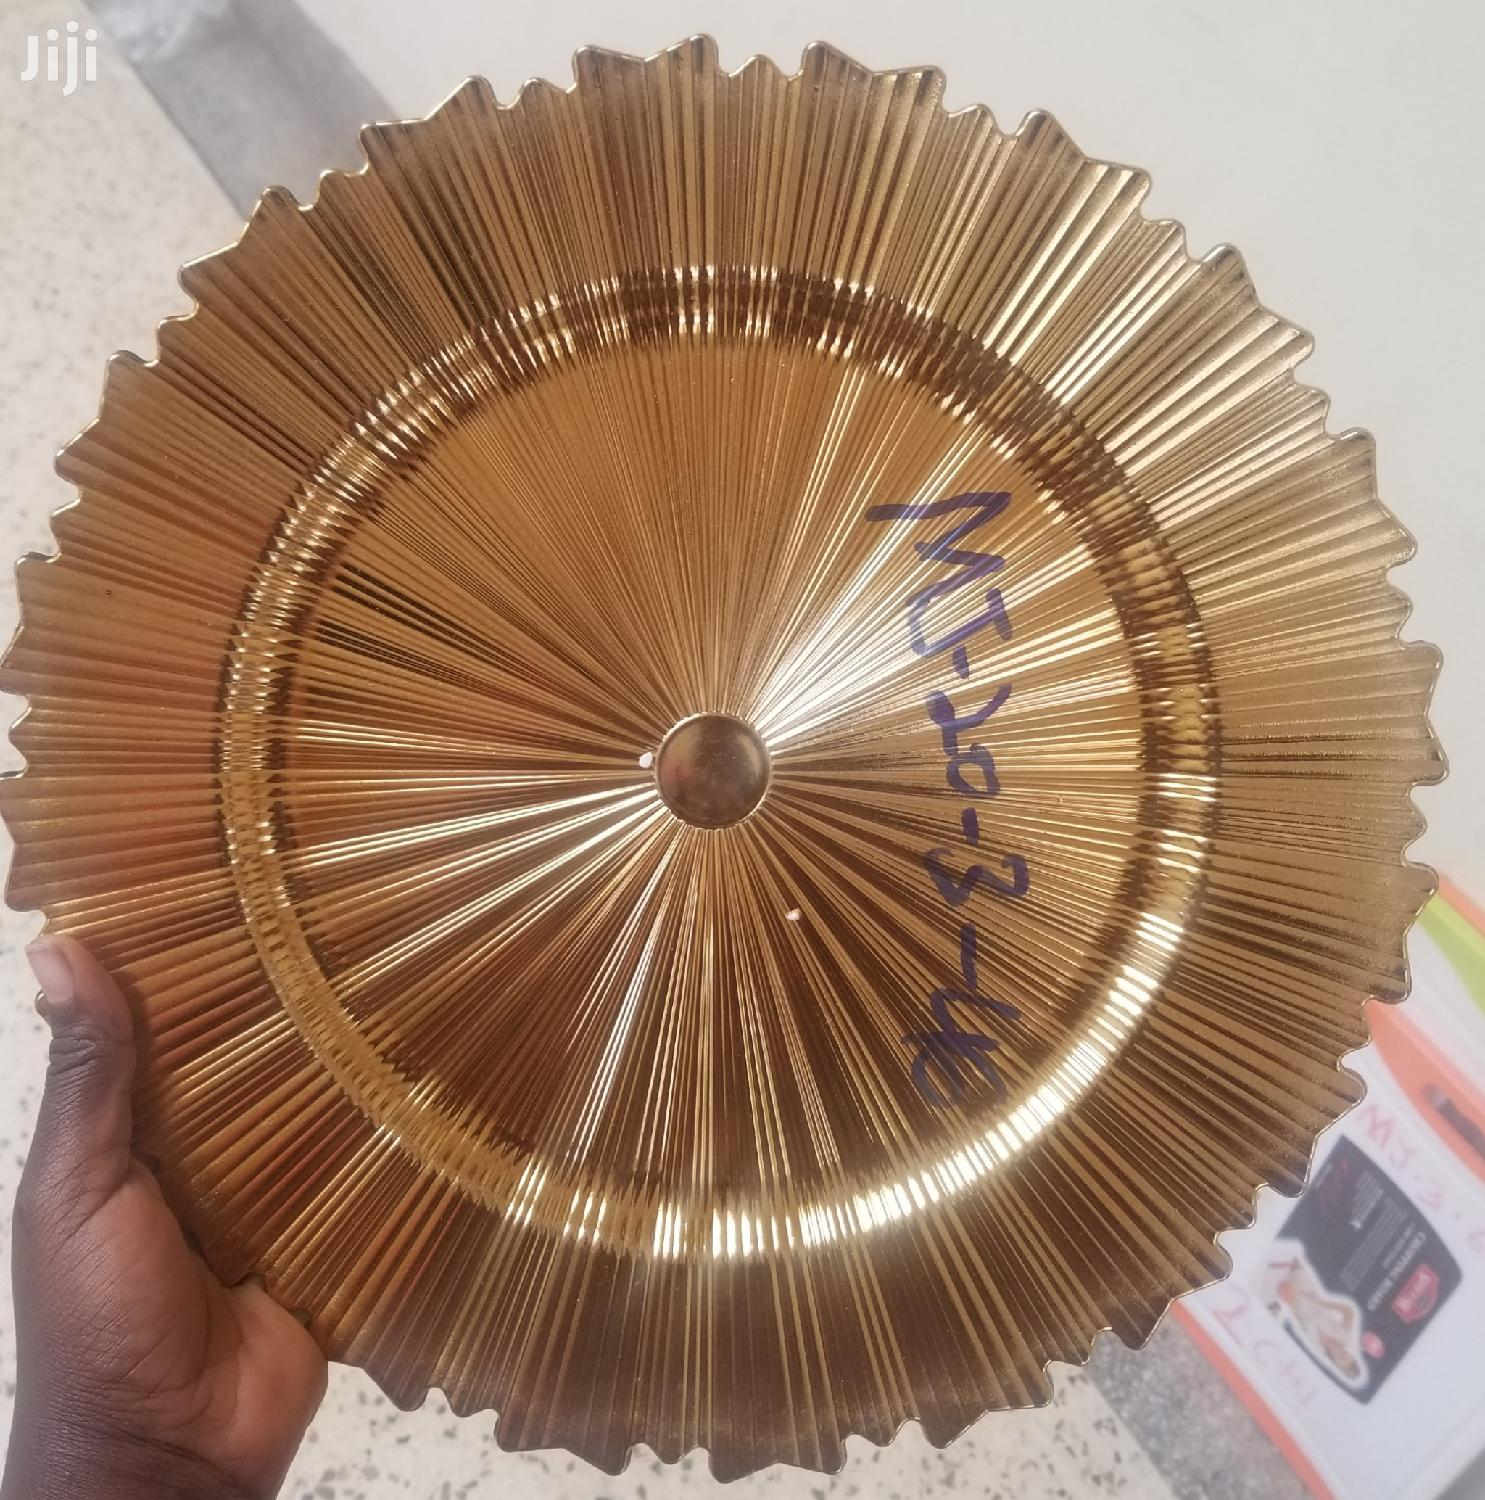 Charger Plates | Kitchen & Dining for sale in Kampala, Central Region, Uganda